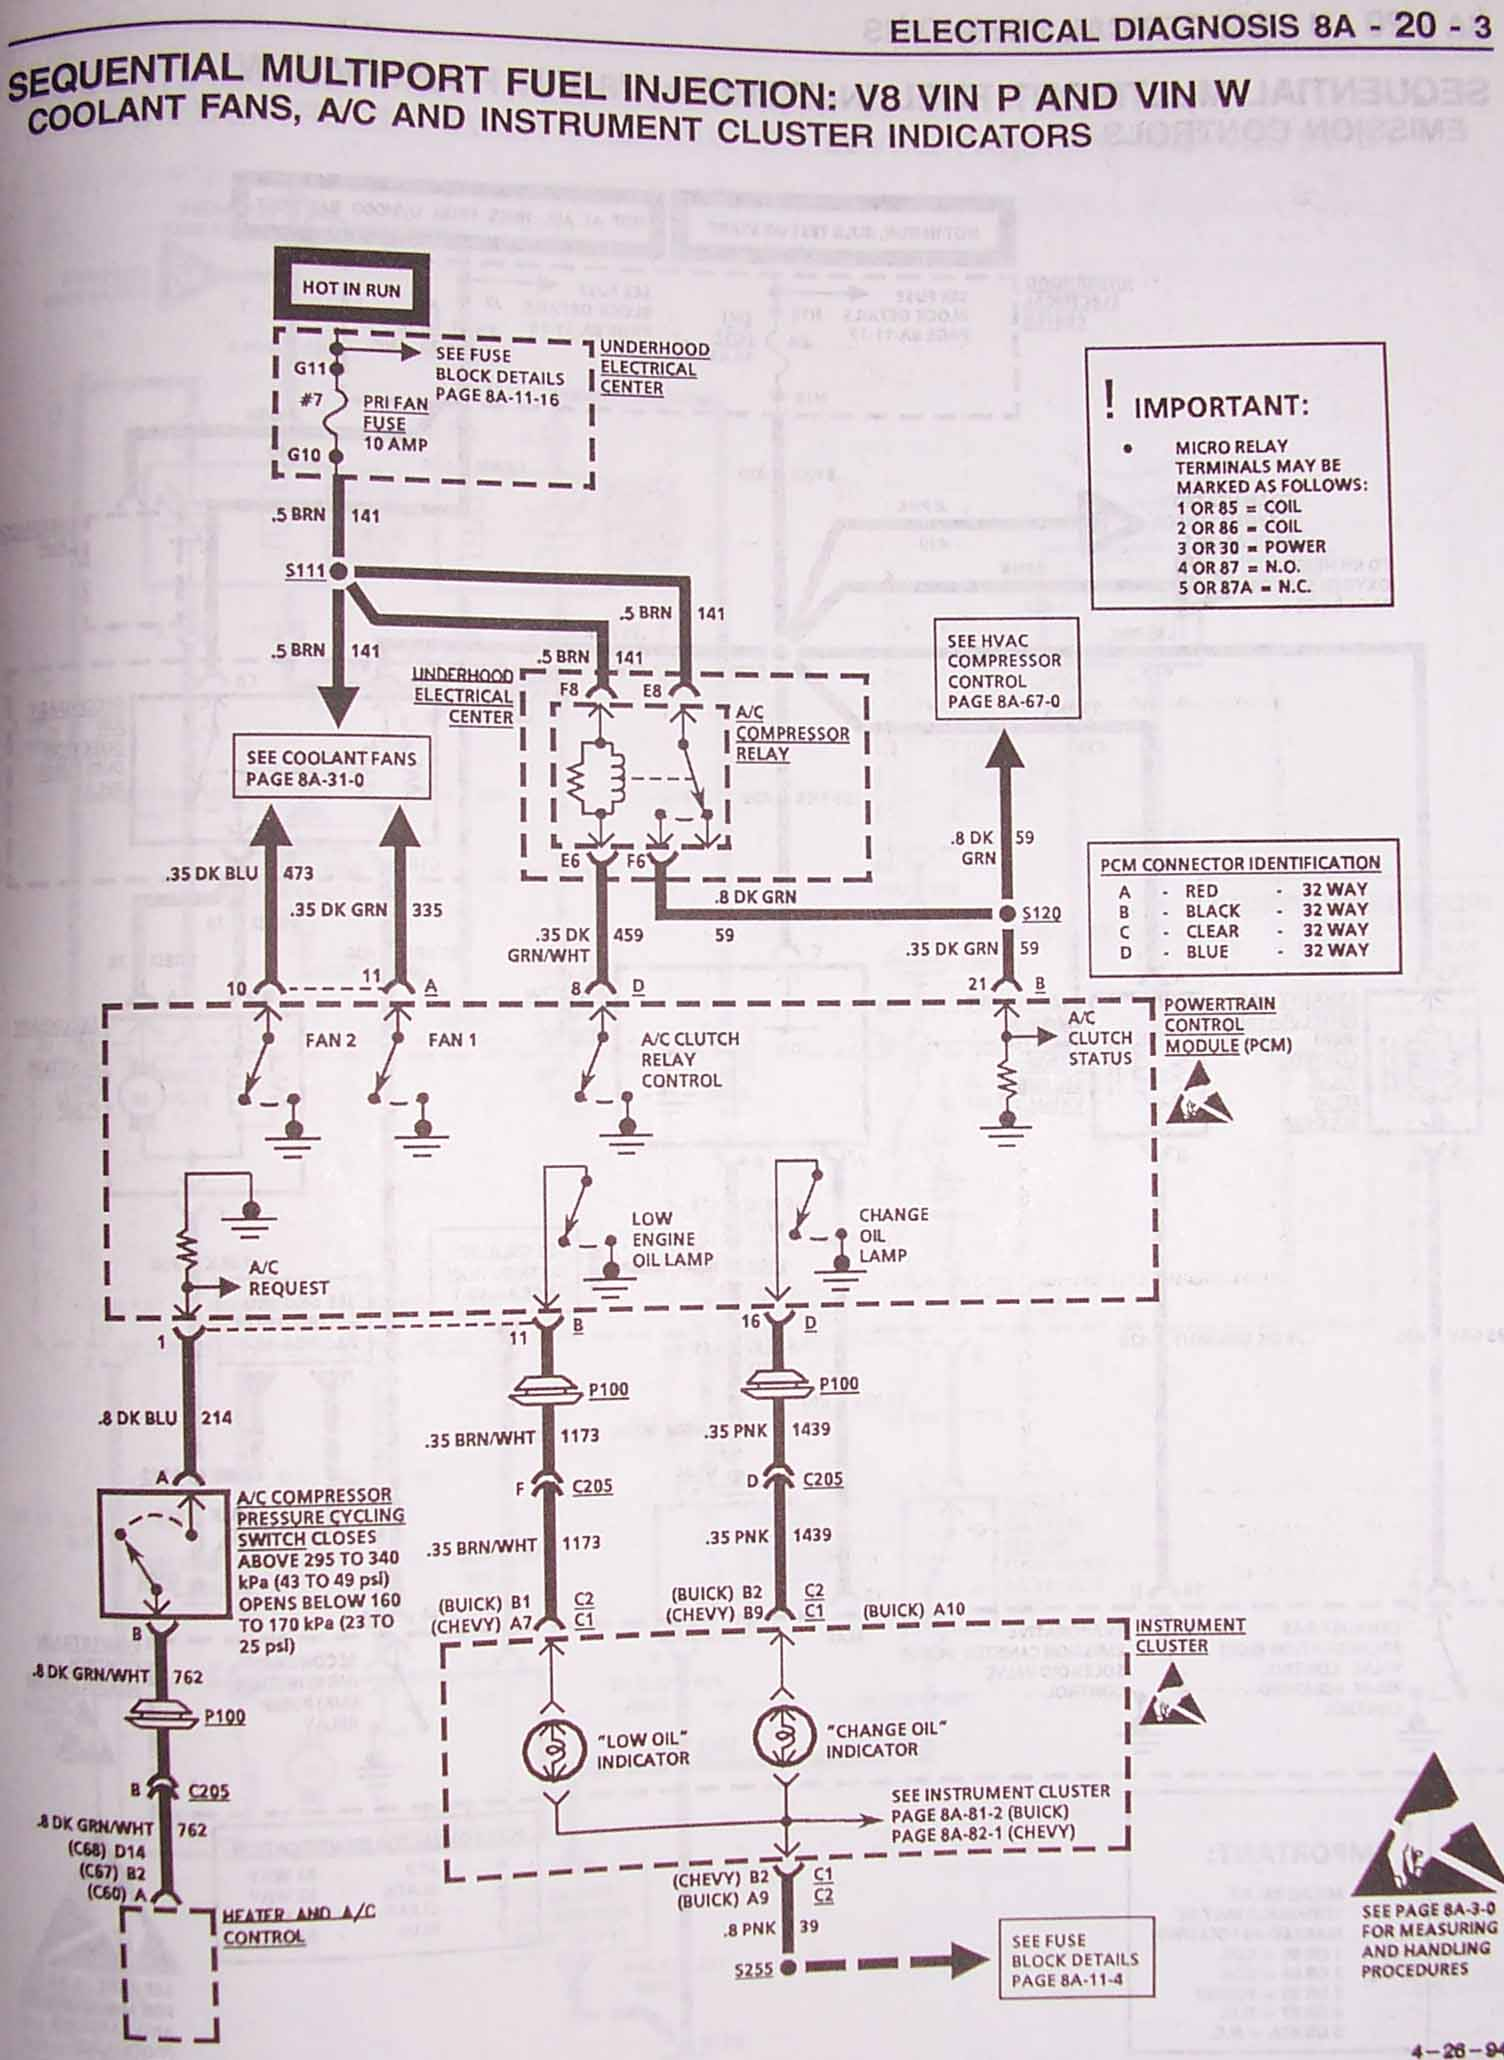 Lt Vats Wiring Diagram 1 Will Be A Thing Lt1 96 Wire Harness Get Free Image About 1973 Firebird 791 Bypass Module